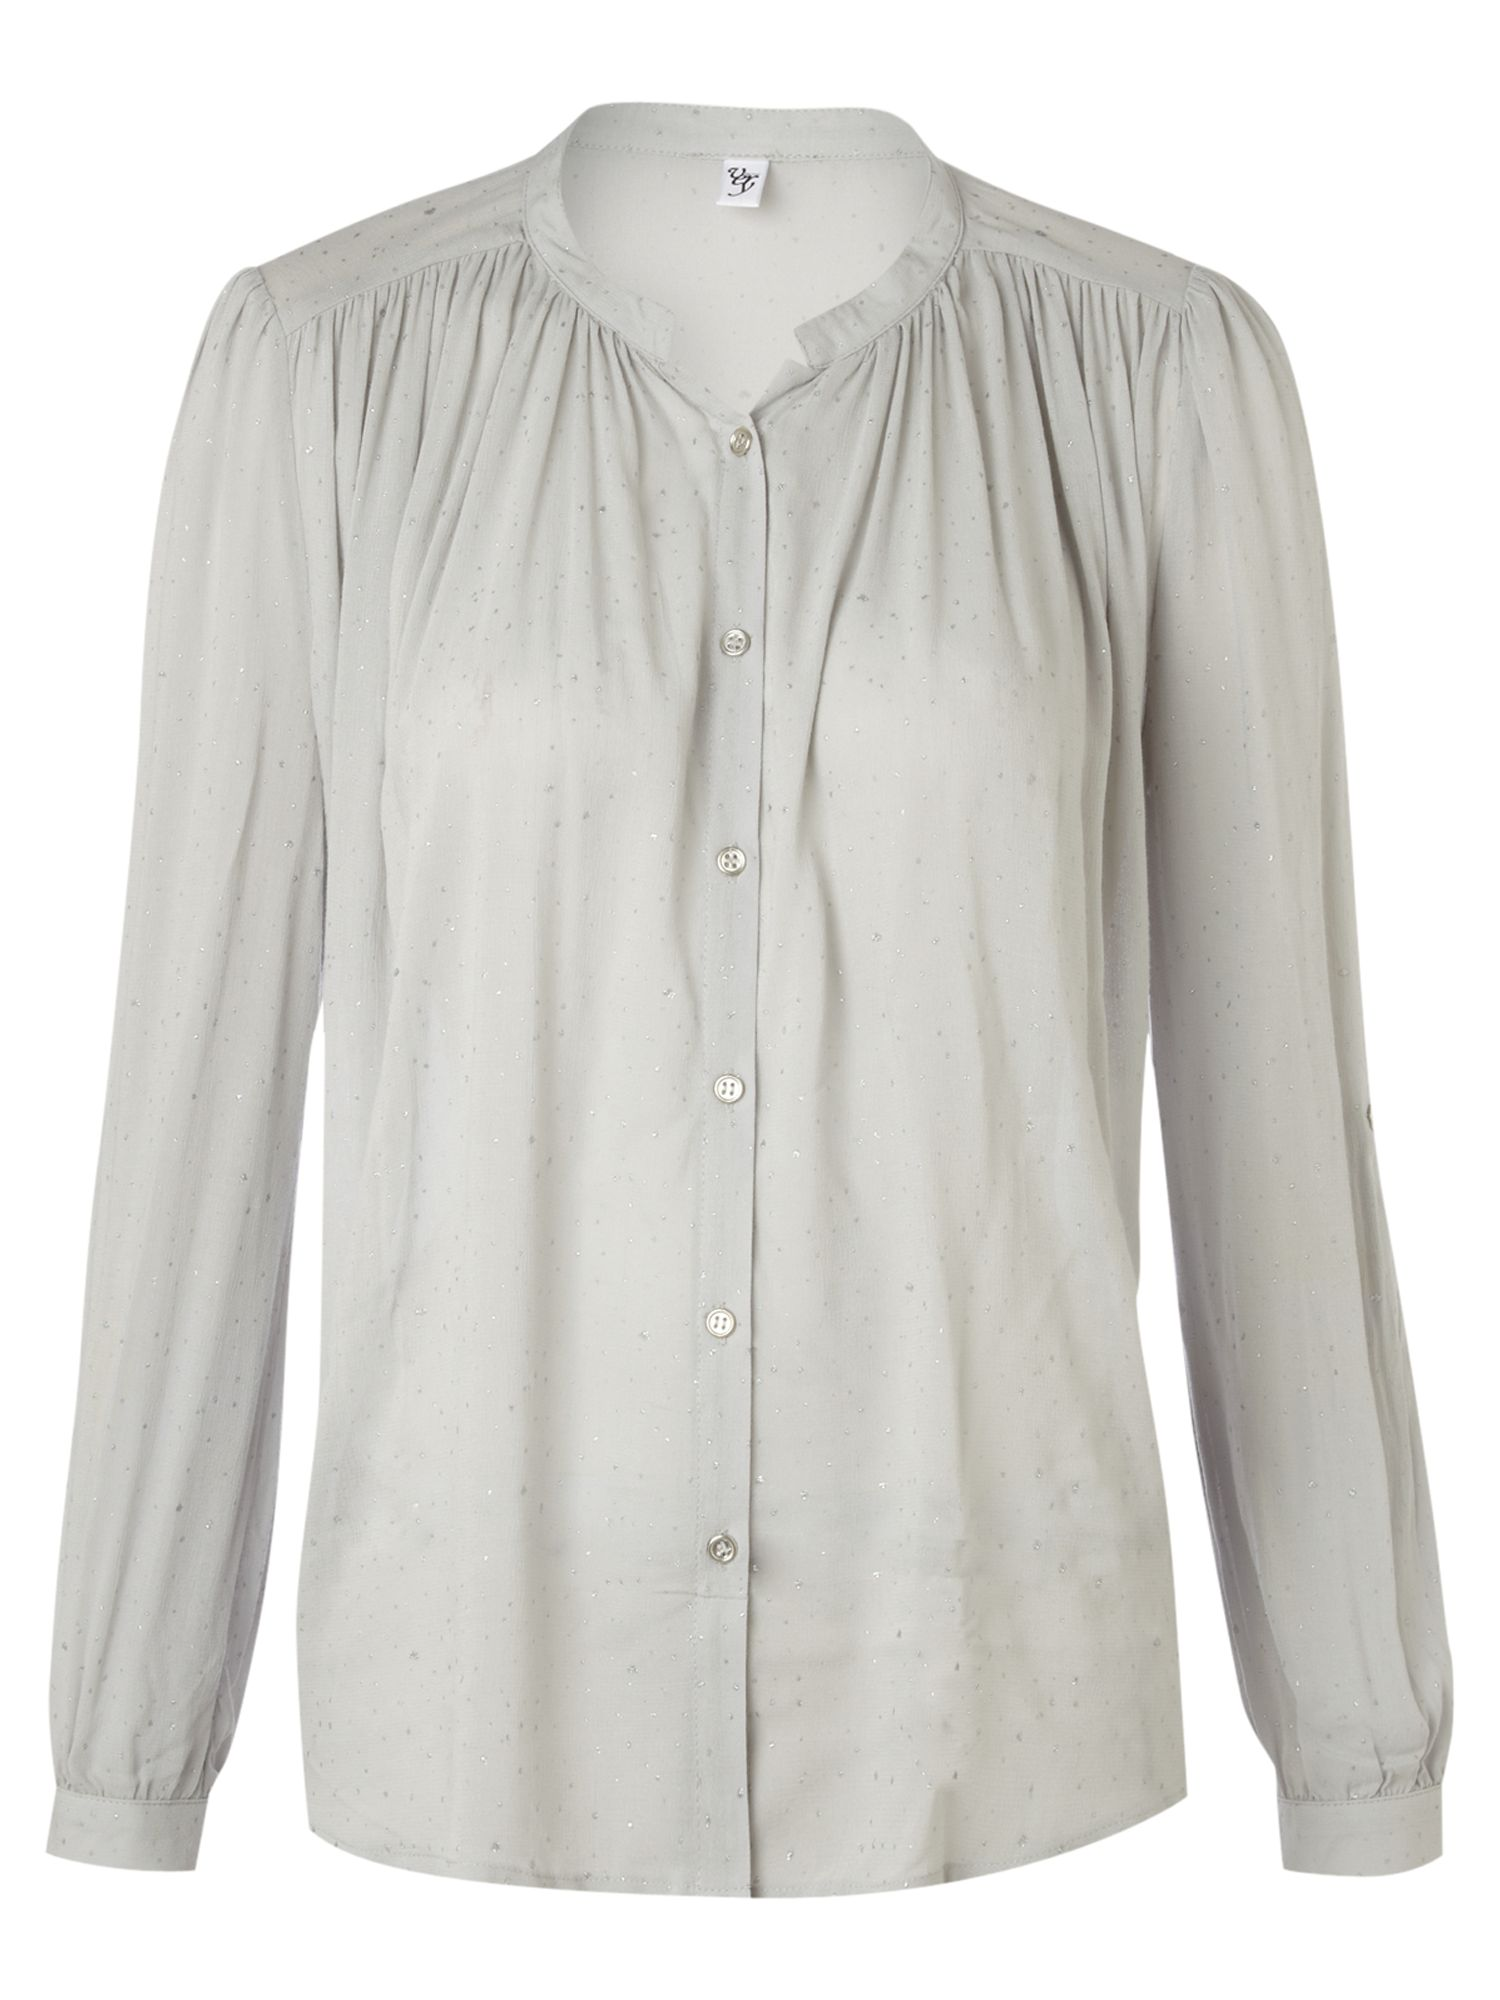 Vero Moda Very Ls round neck embellished blouse top - White product image